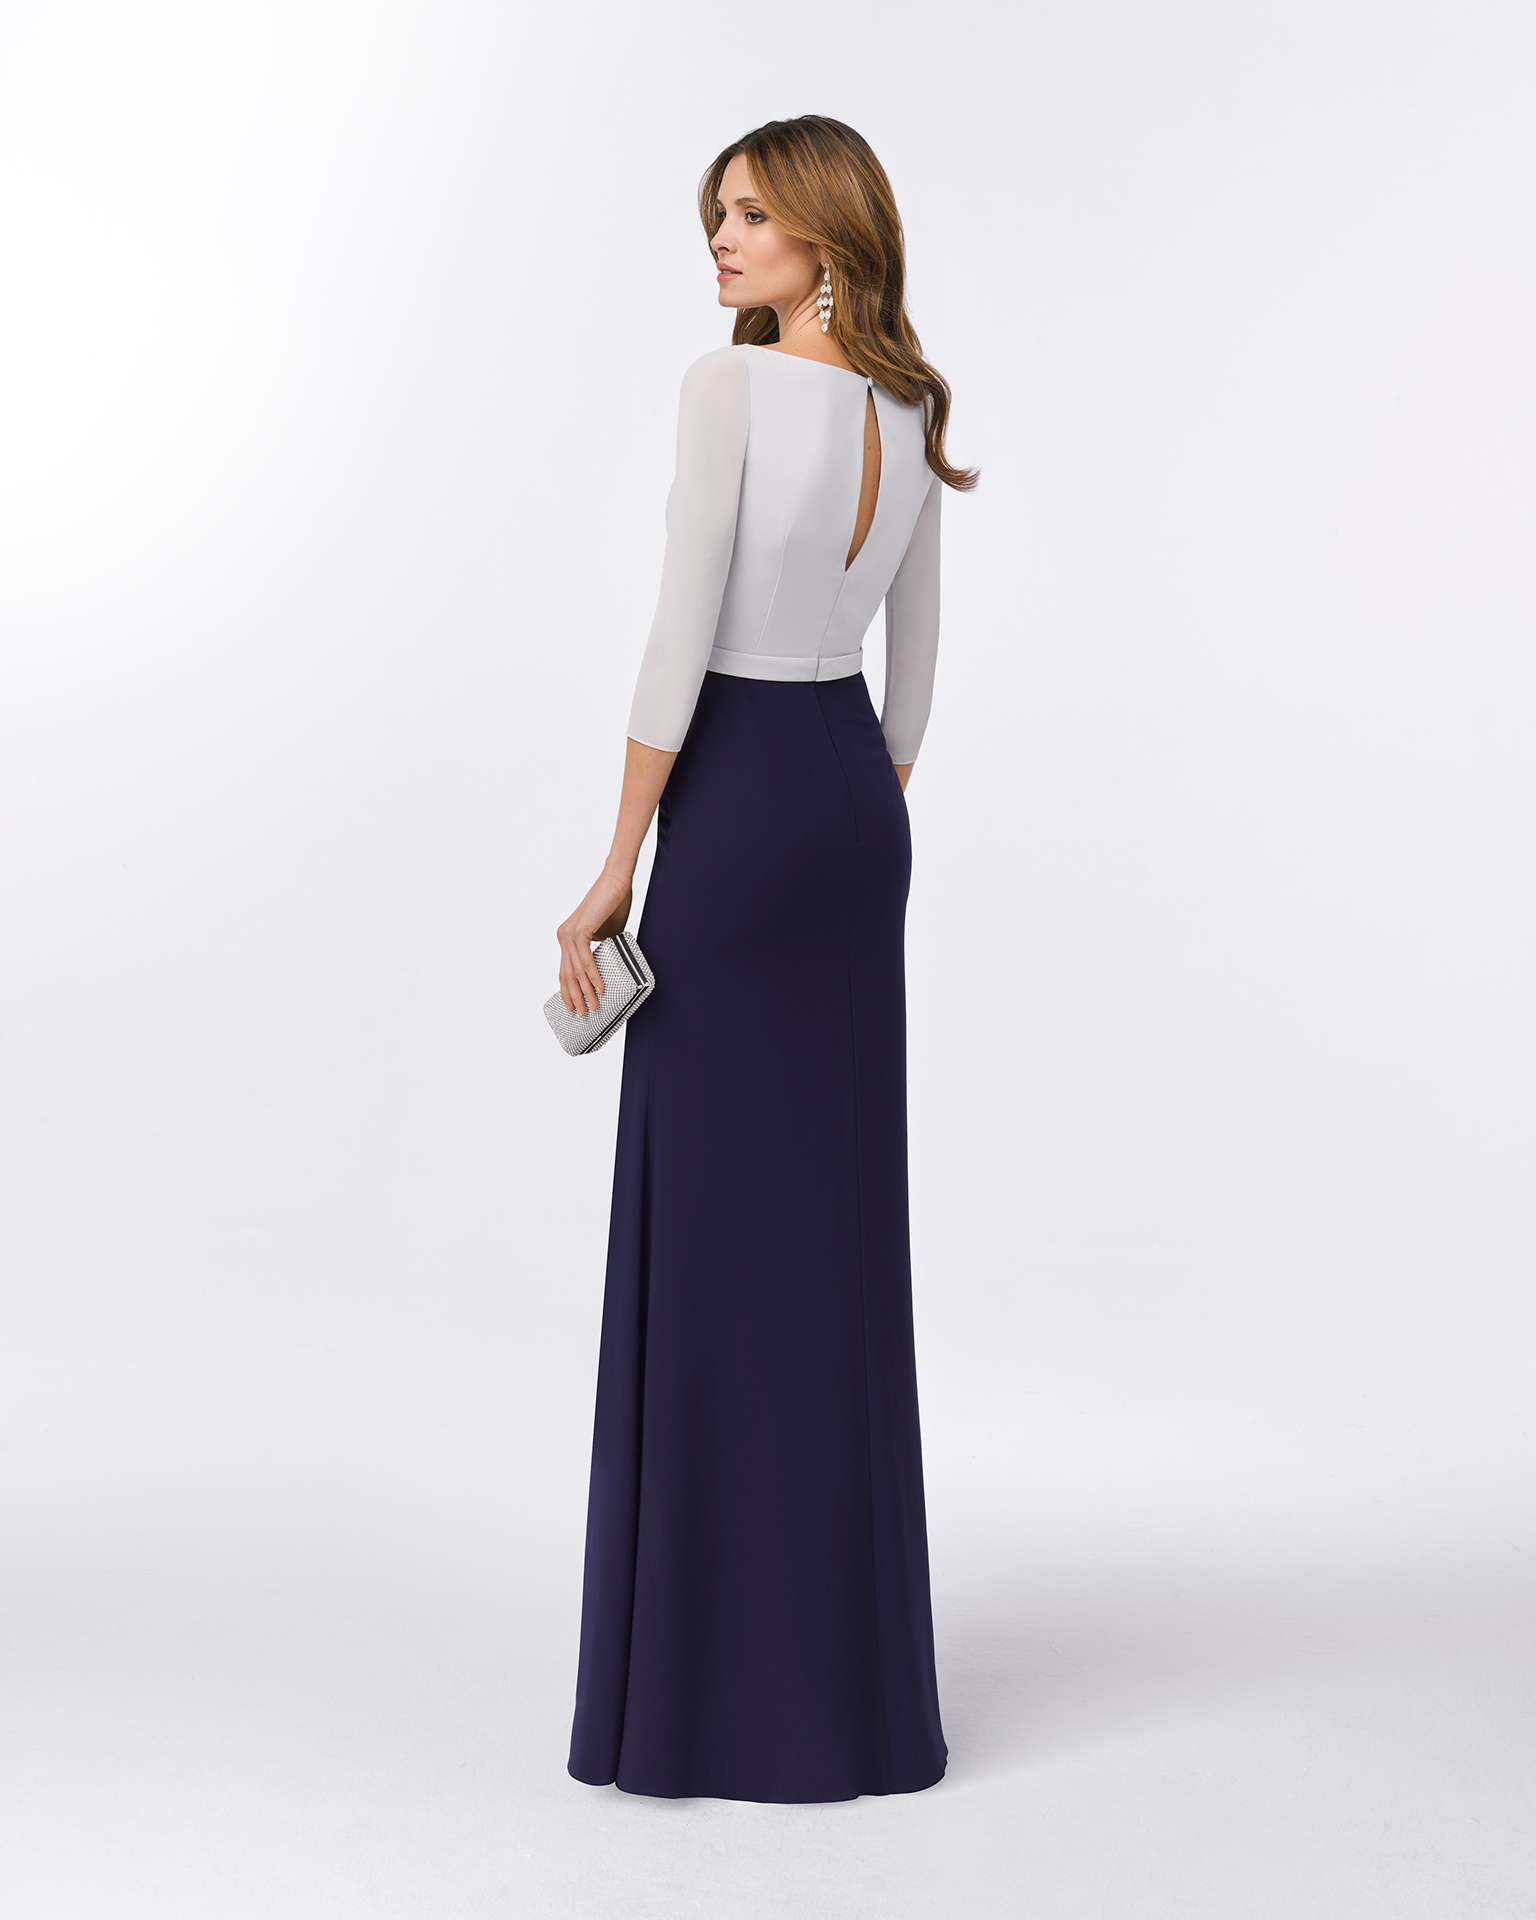 Long beaded chiffon cocktail dress with three-quarter sleeves and slit side. Available in silver/navy blue and natural/silver 2018 FIESTA AIRE BARCELONA Collection.